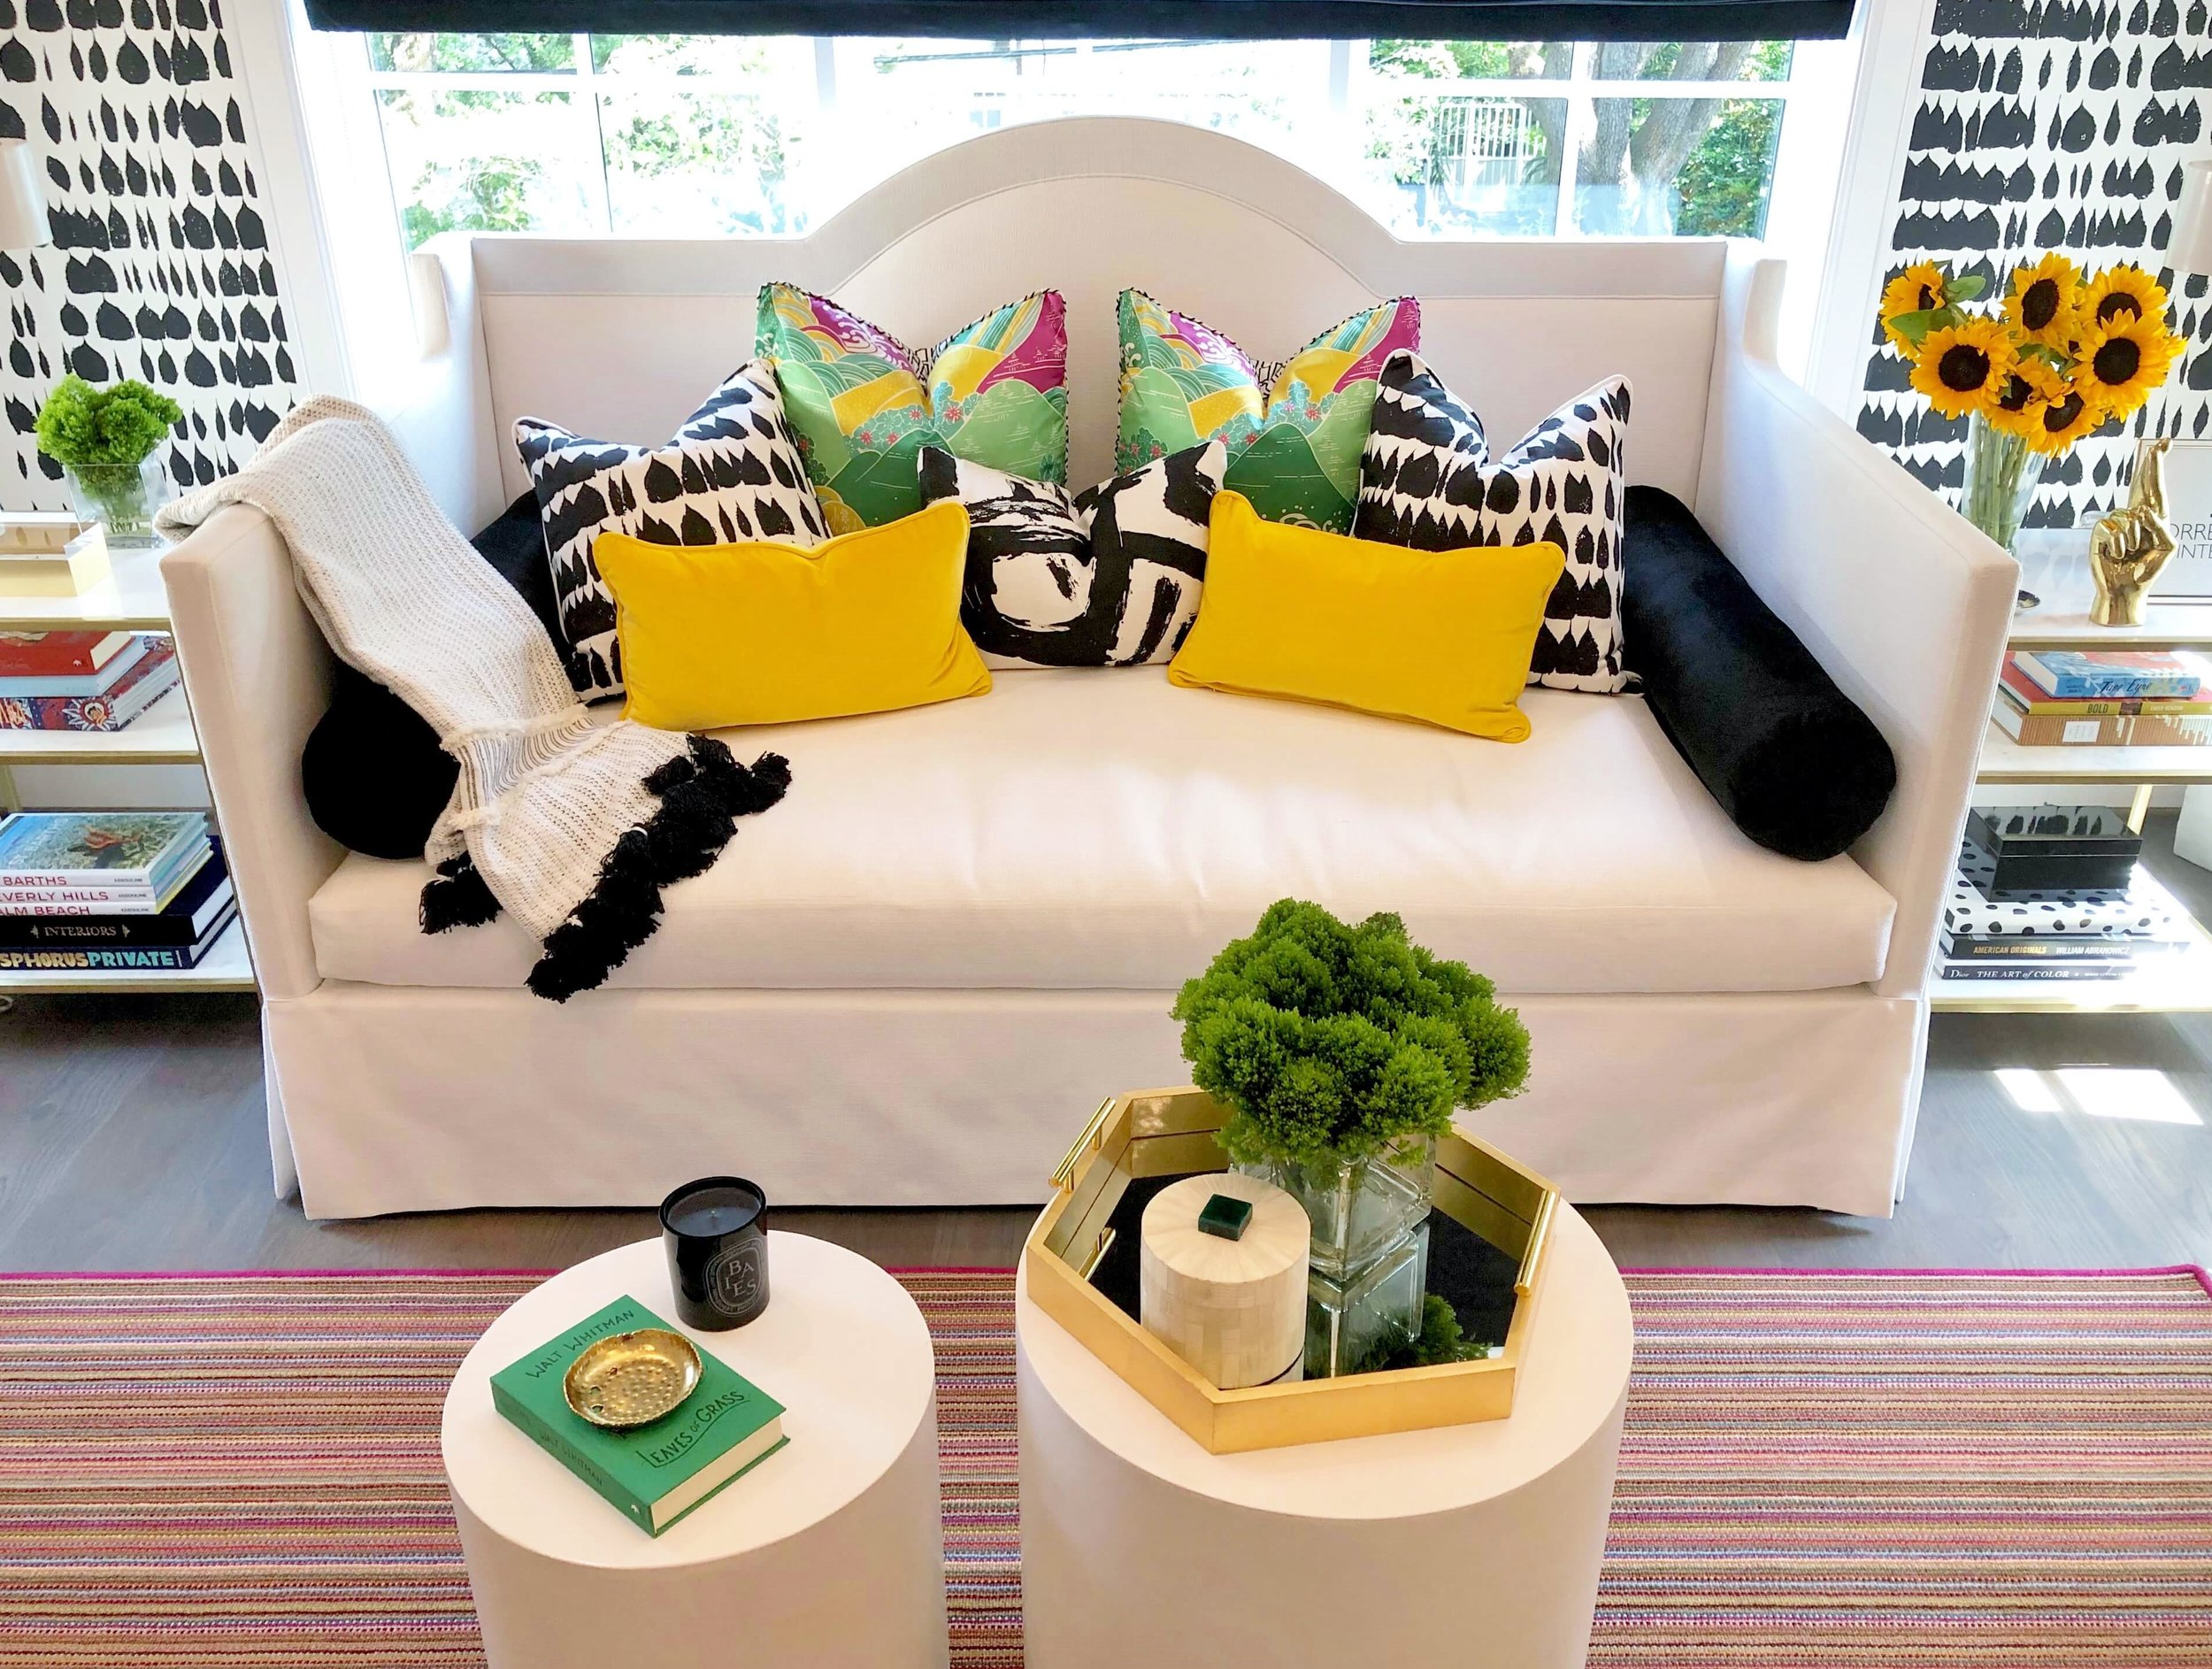 White upholstered daybed with yellow and black pillows, designed by Tiffany Montgomery of Torregrossa Interiors, for the  ASID Showhouse 2019.  #daybed #upholstereddaybed #bedroomdecor